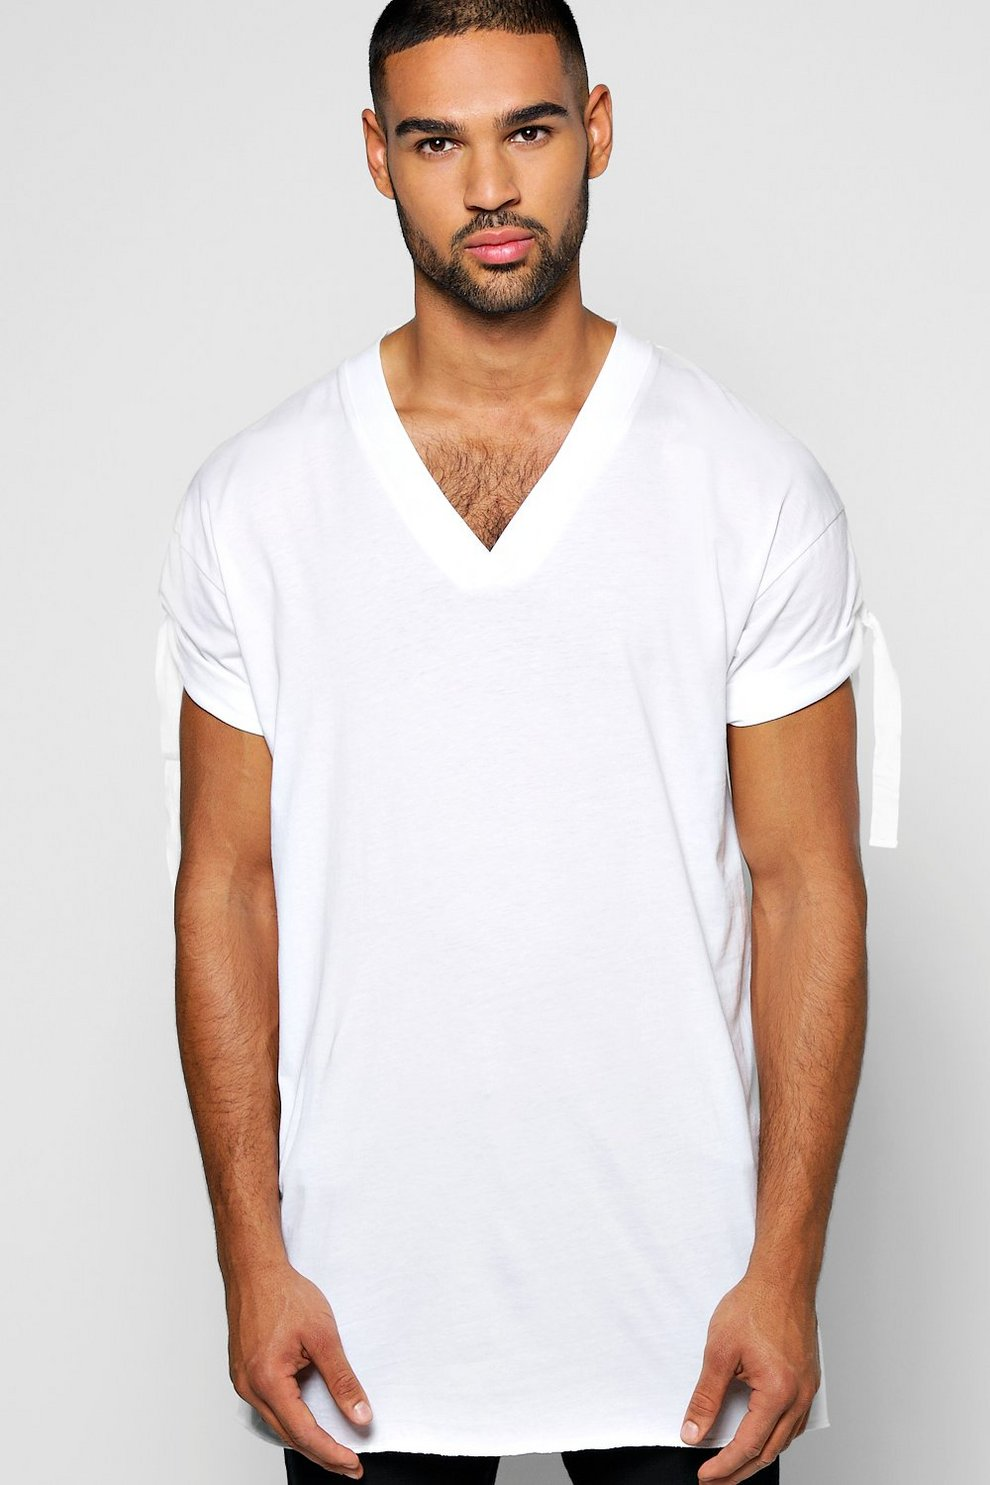 0449f7efe9d1e8 Longline Tie Turn Up Sleeved Tee - boohooMAN